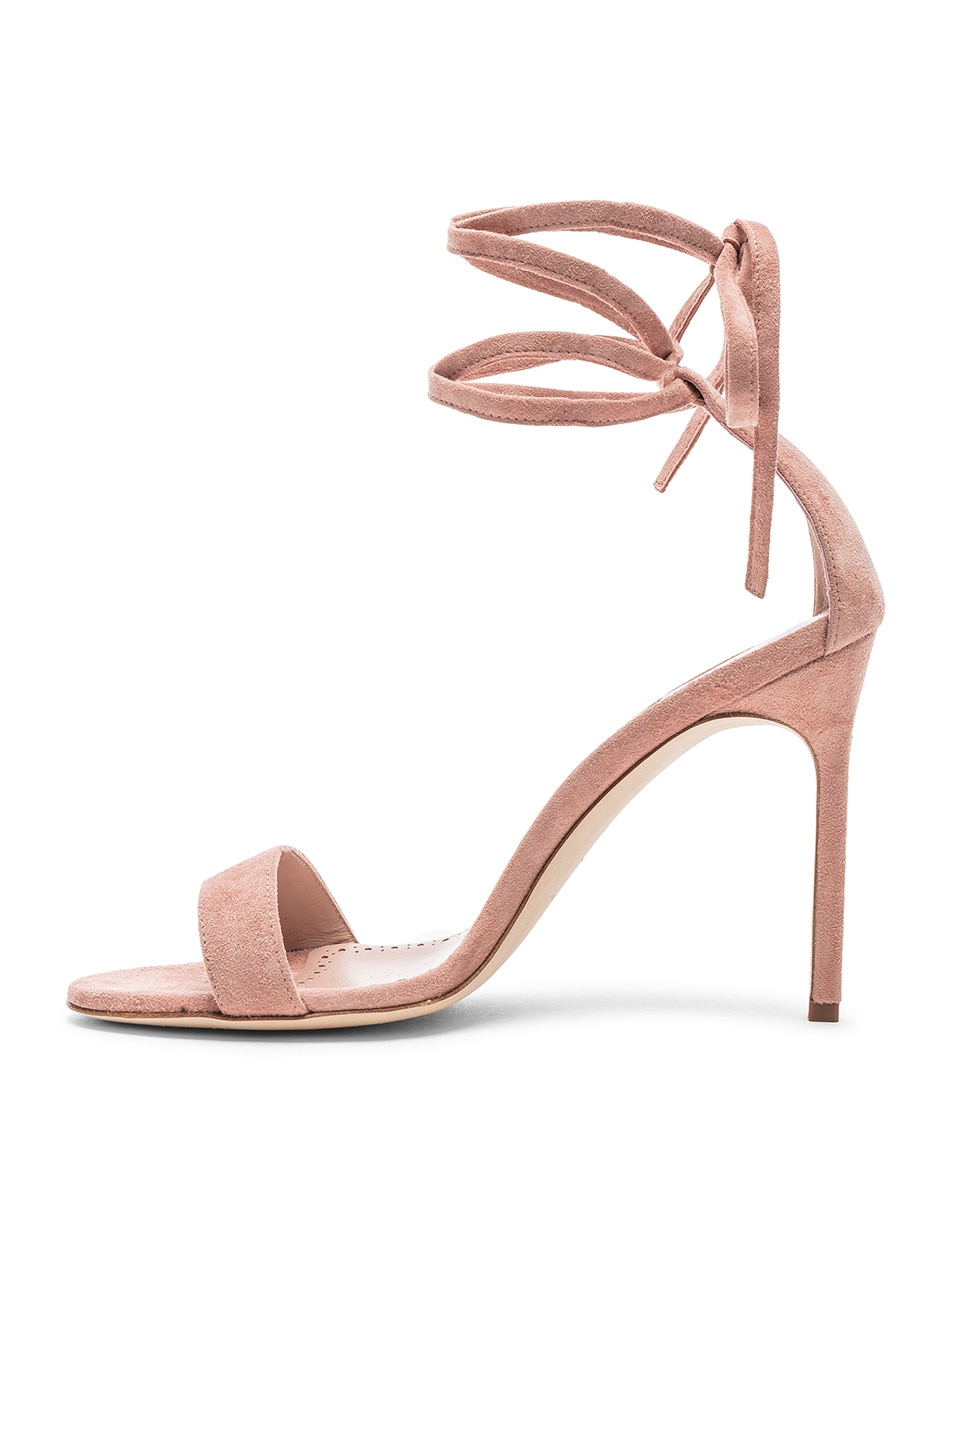 Image 5 of Manolo Blahnik Chaosbow Suede 105 Heel in Canyon Blush